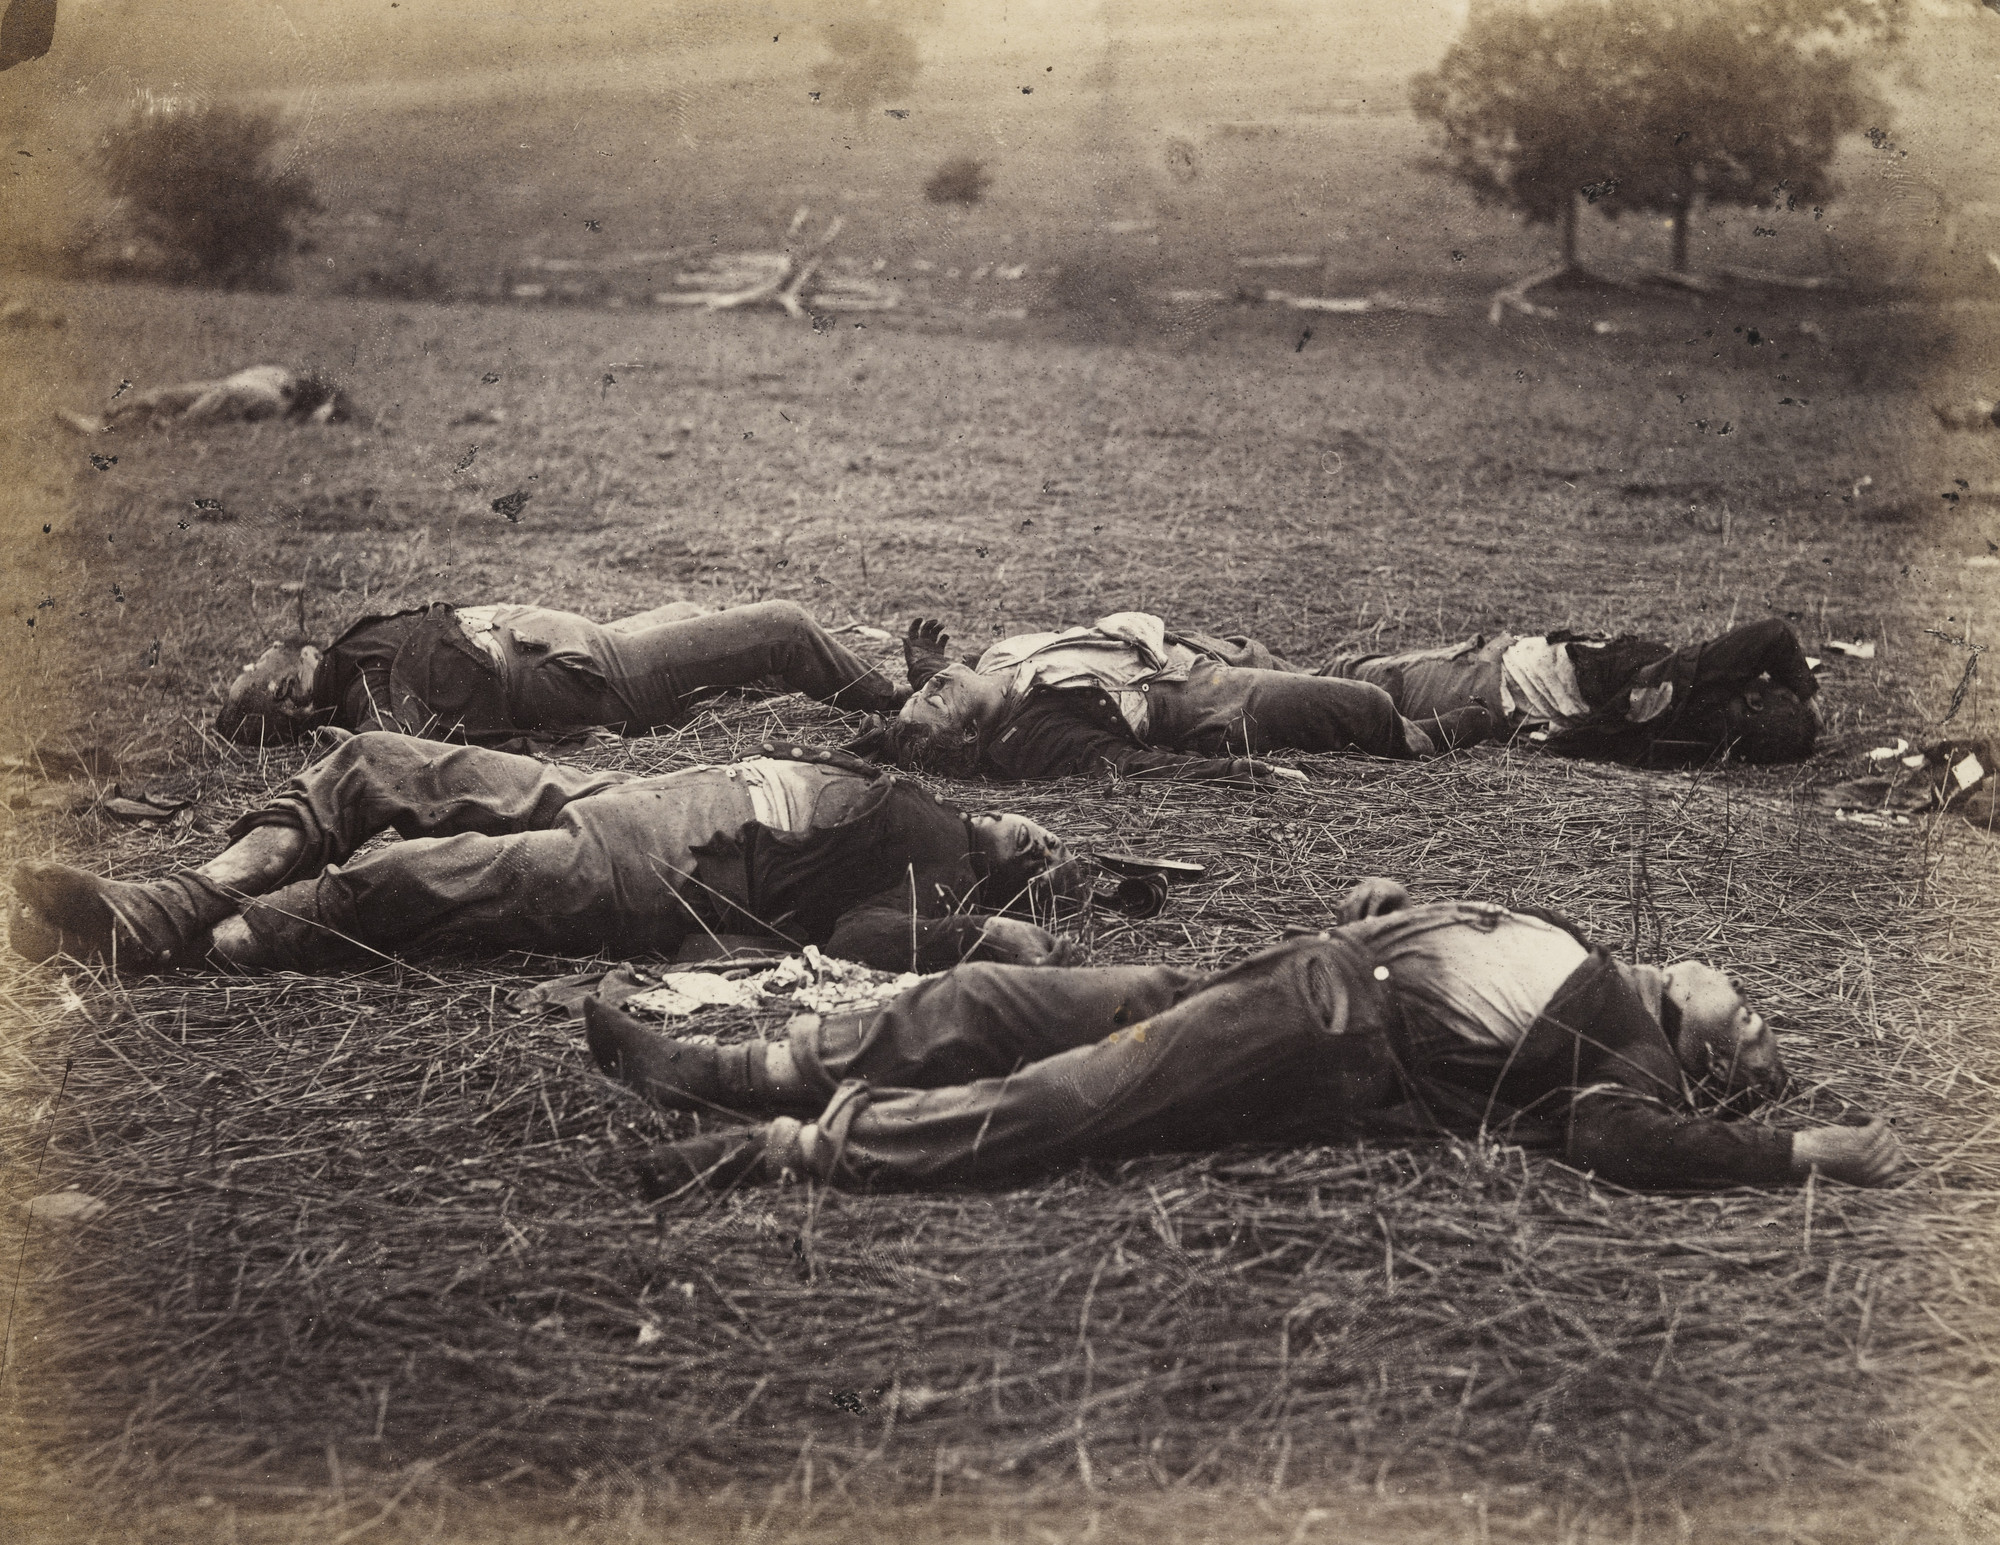 Alexander Gardner, Timothy O'Sullivan. Field Where General Reynolds Fell, Gettysburg.. July 1863